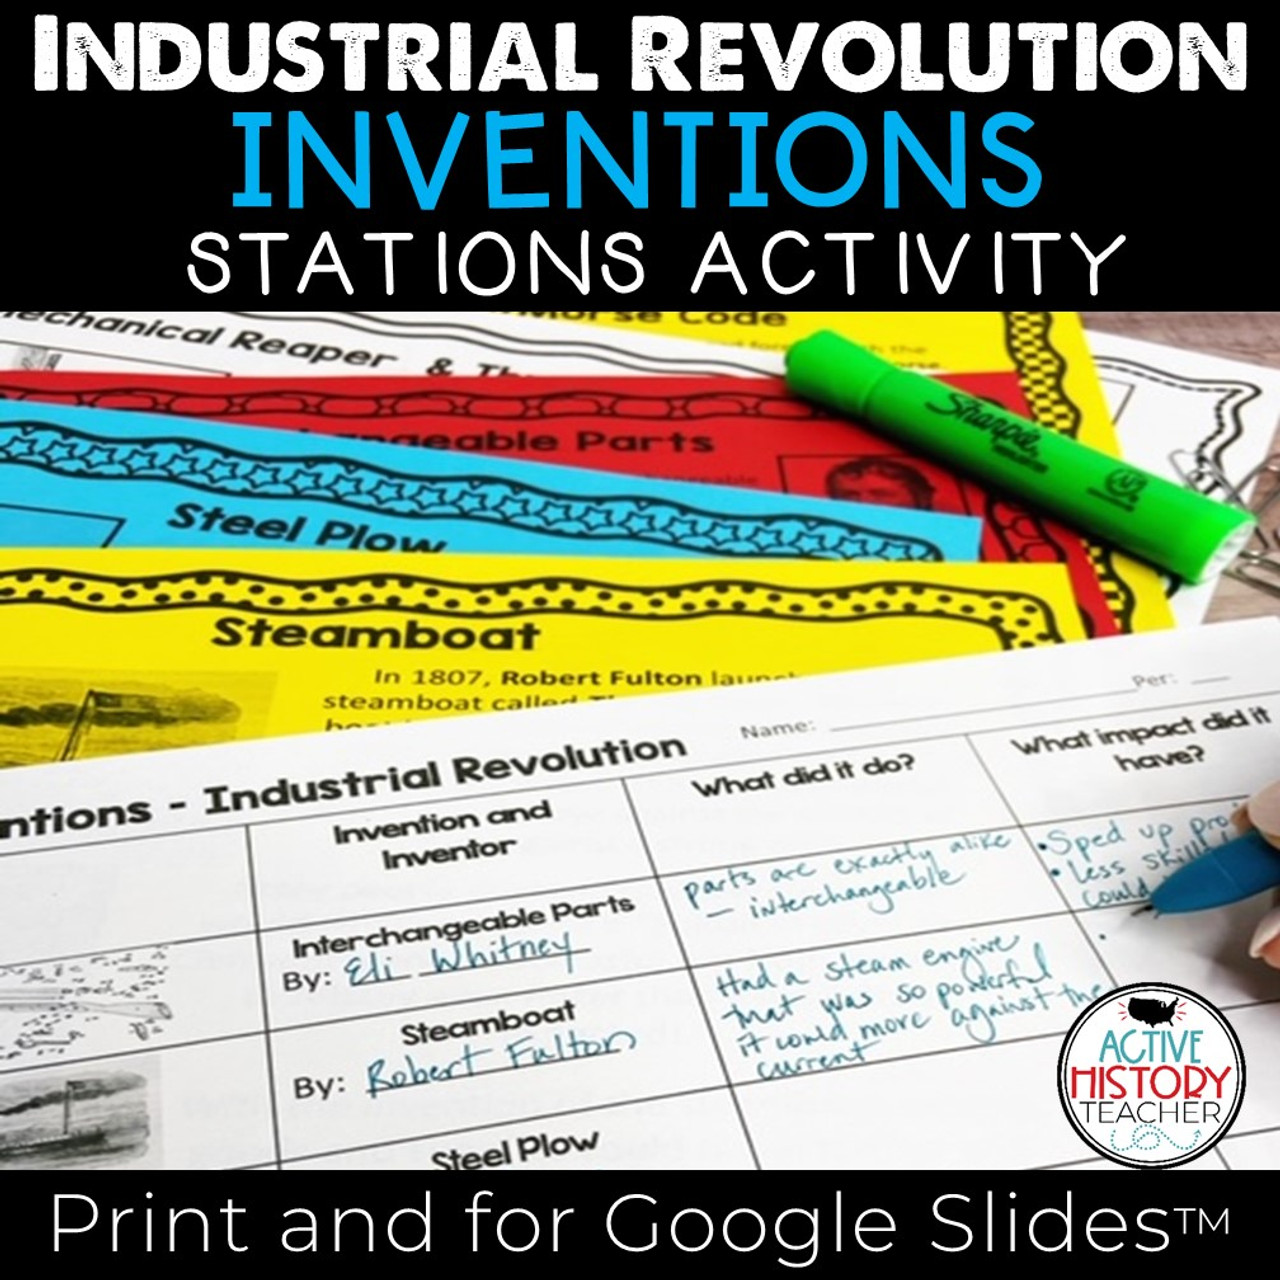 hight resolution of Industrial Revolution Inventions: Stations Activity - Amped Up Learning